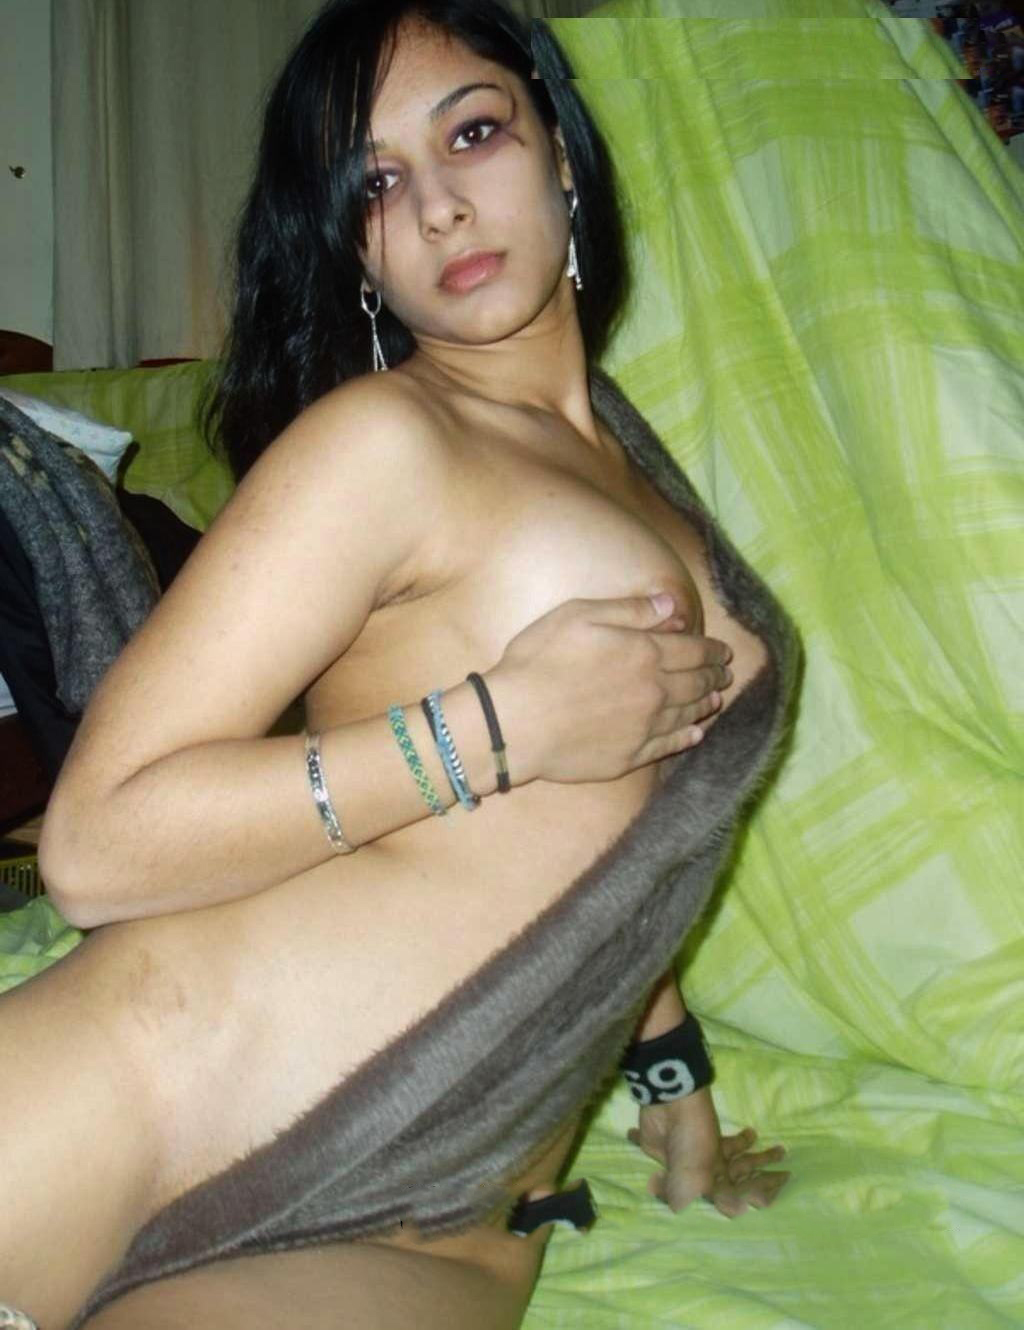 best desi porn sites